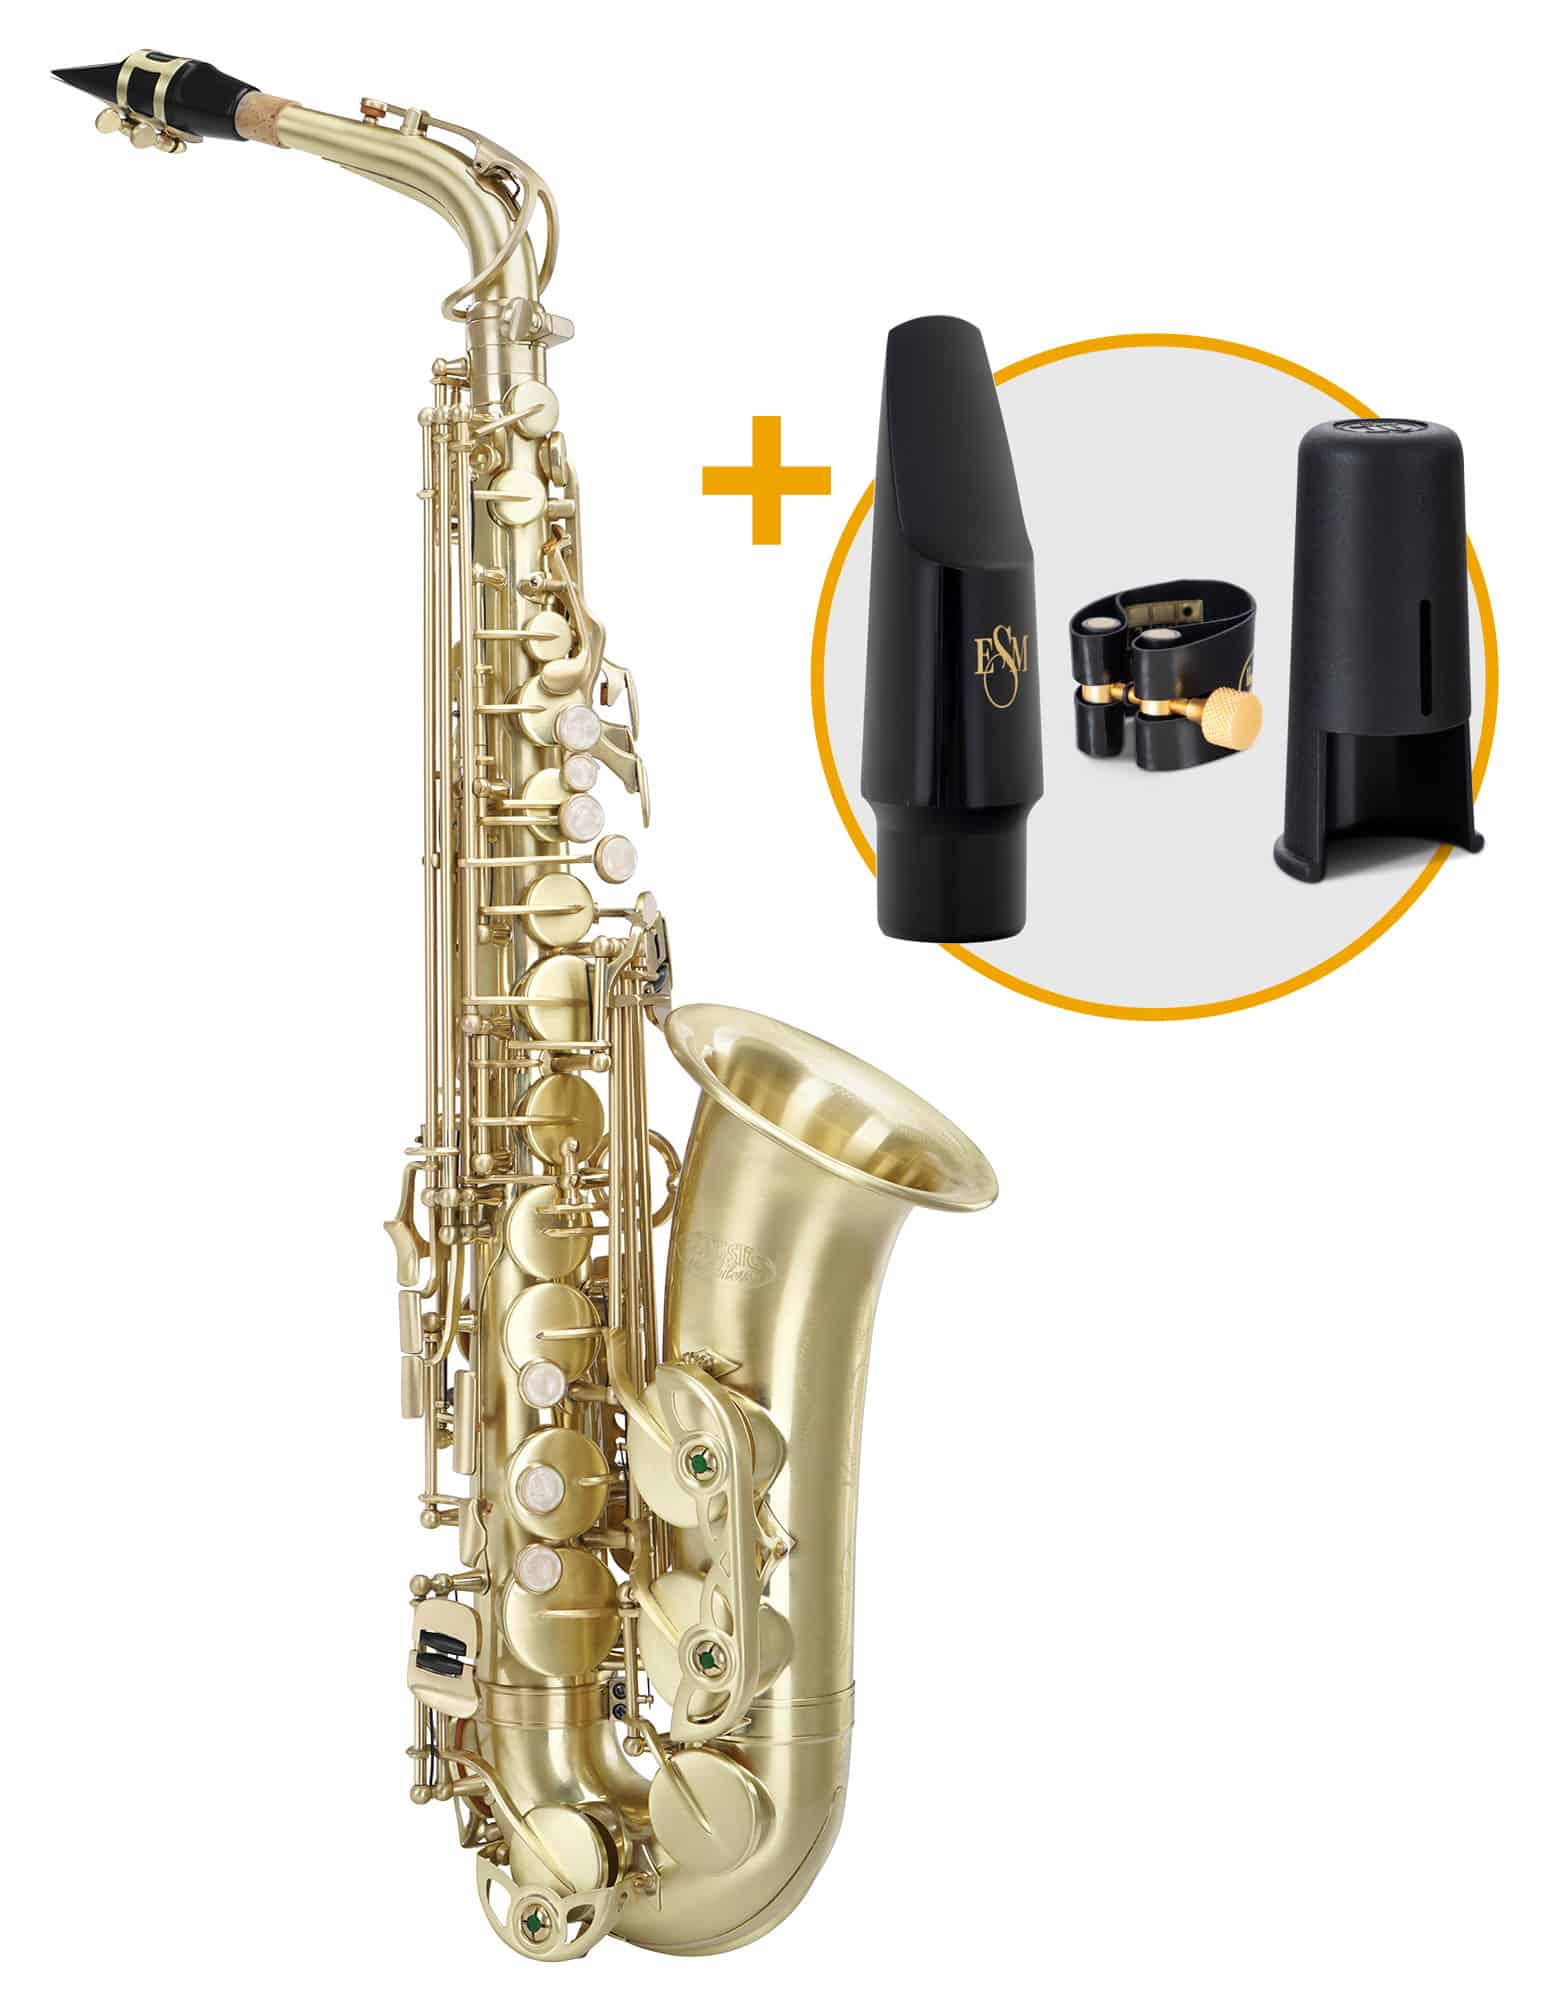 Saxophone - Classic Cantabile Winds AS 450 Brushed Altsaxophon ESM Set - Onlineshop Musikhaus Kirstein